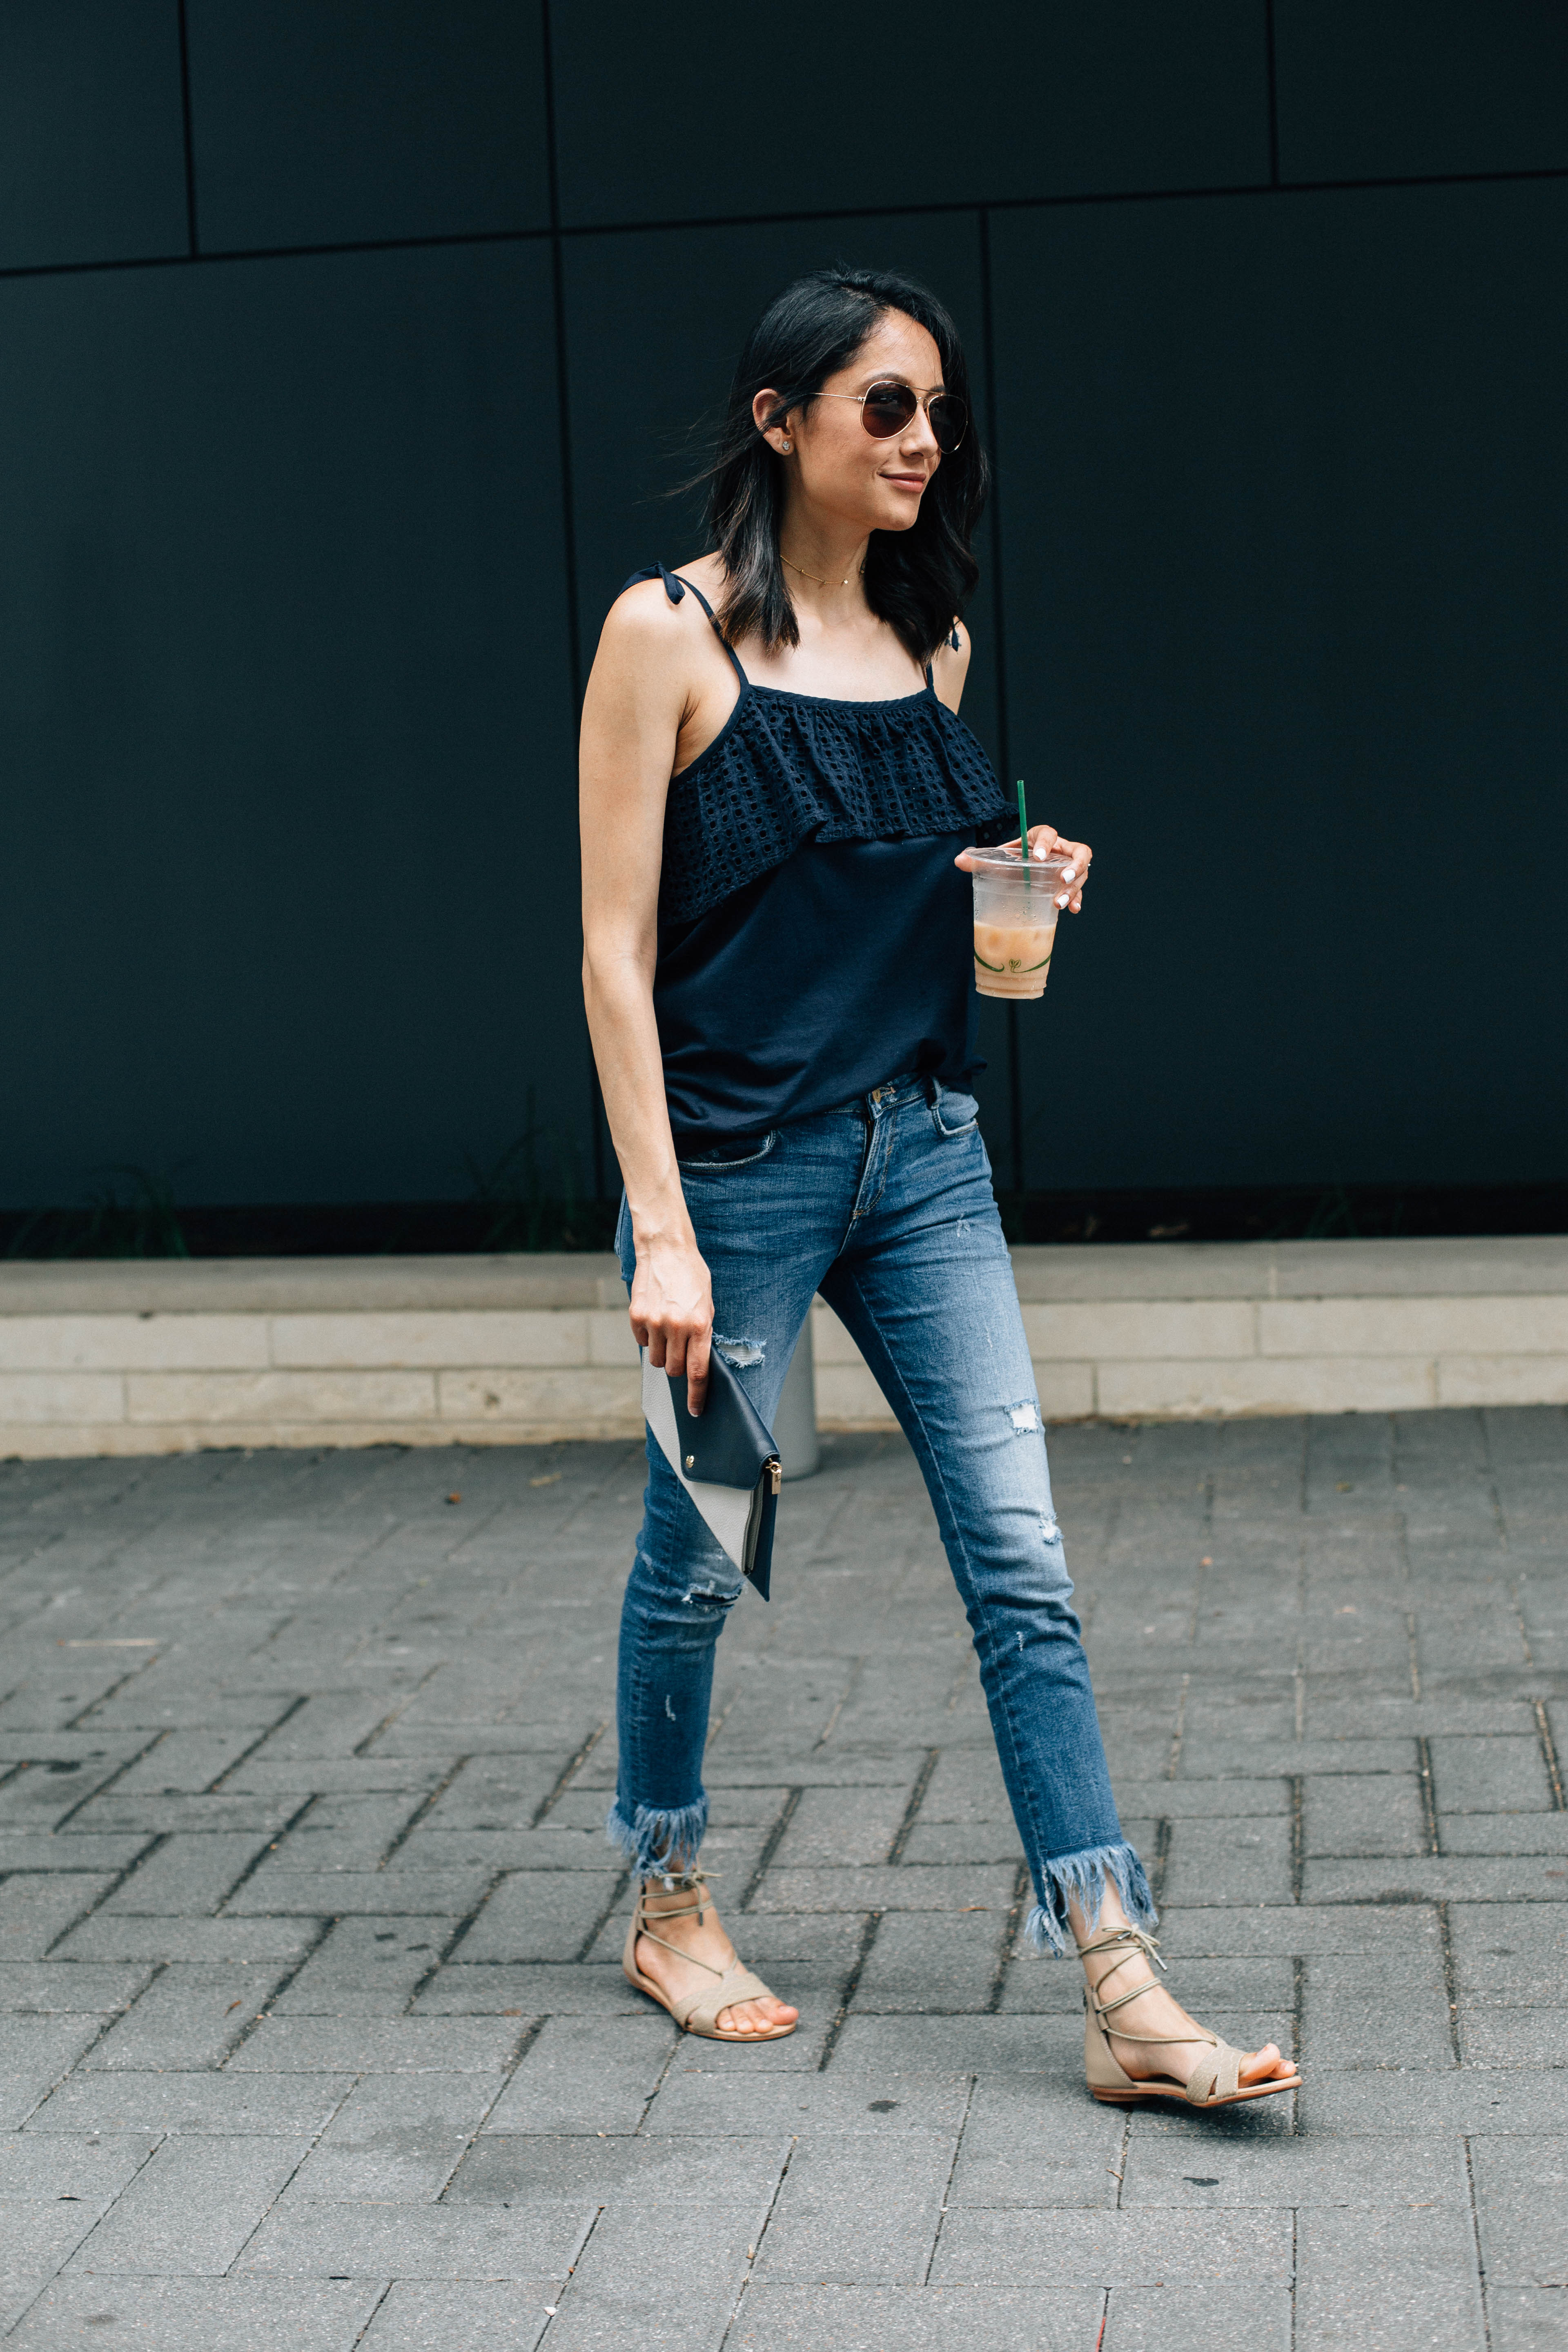 Lifestyle blogger Lilly Beltran from Daily Craving wearing a denim jeans and nude lace up sandals